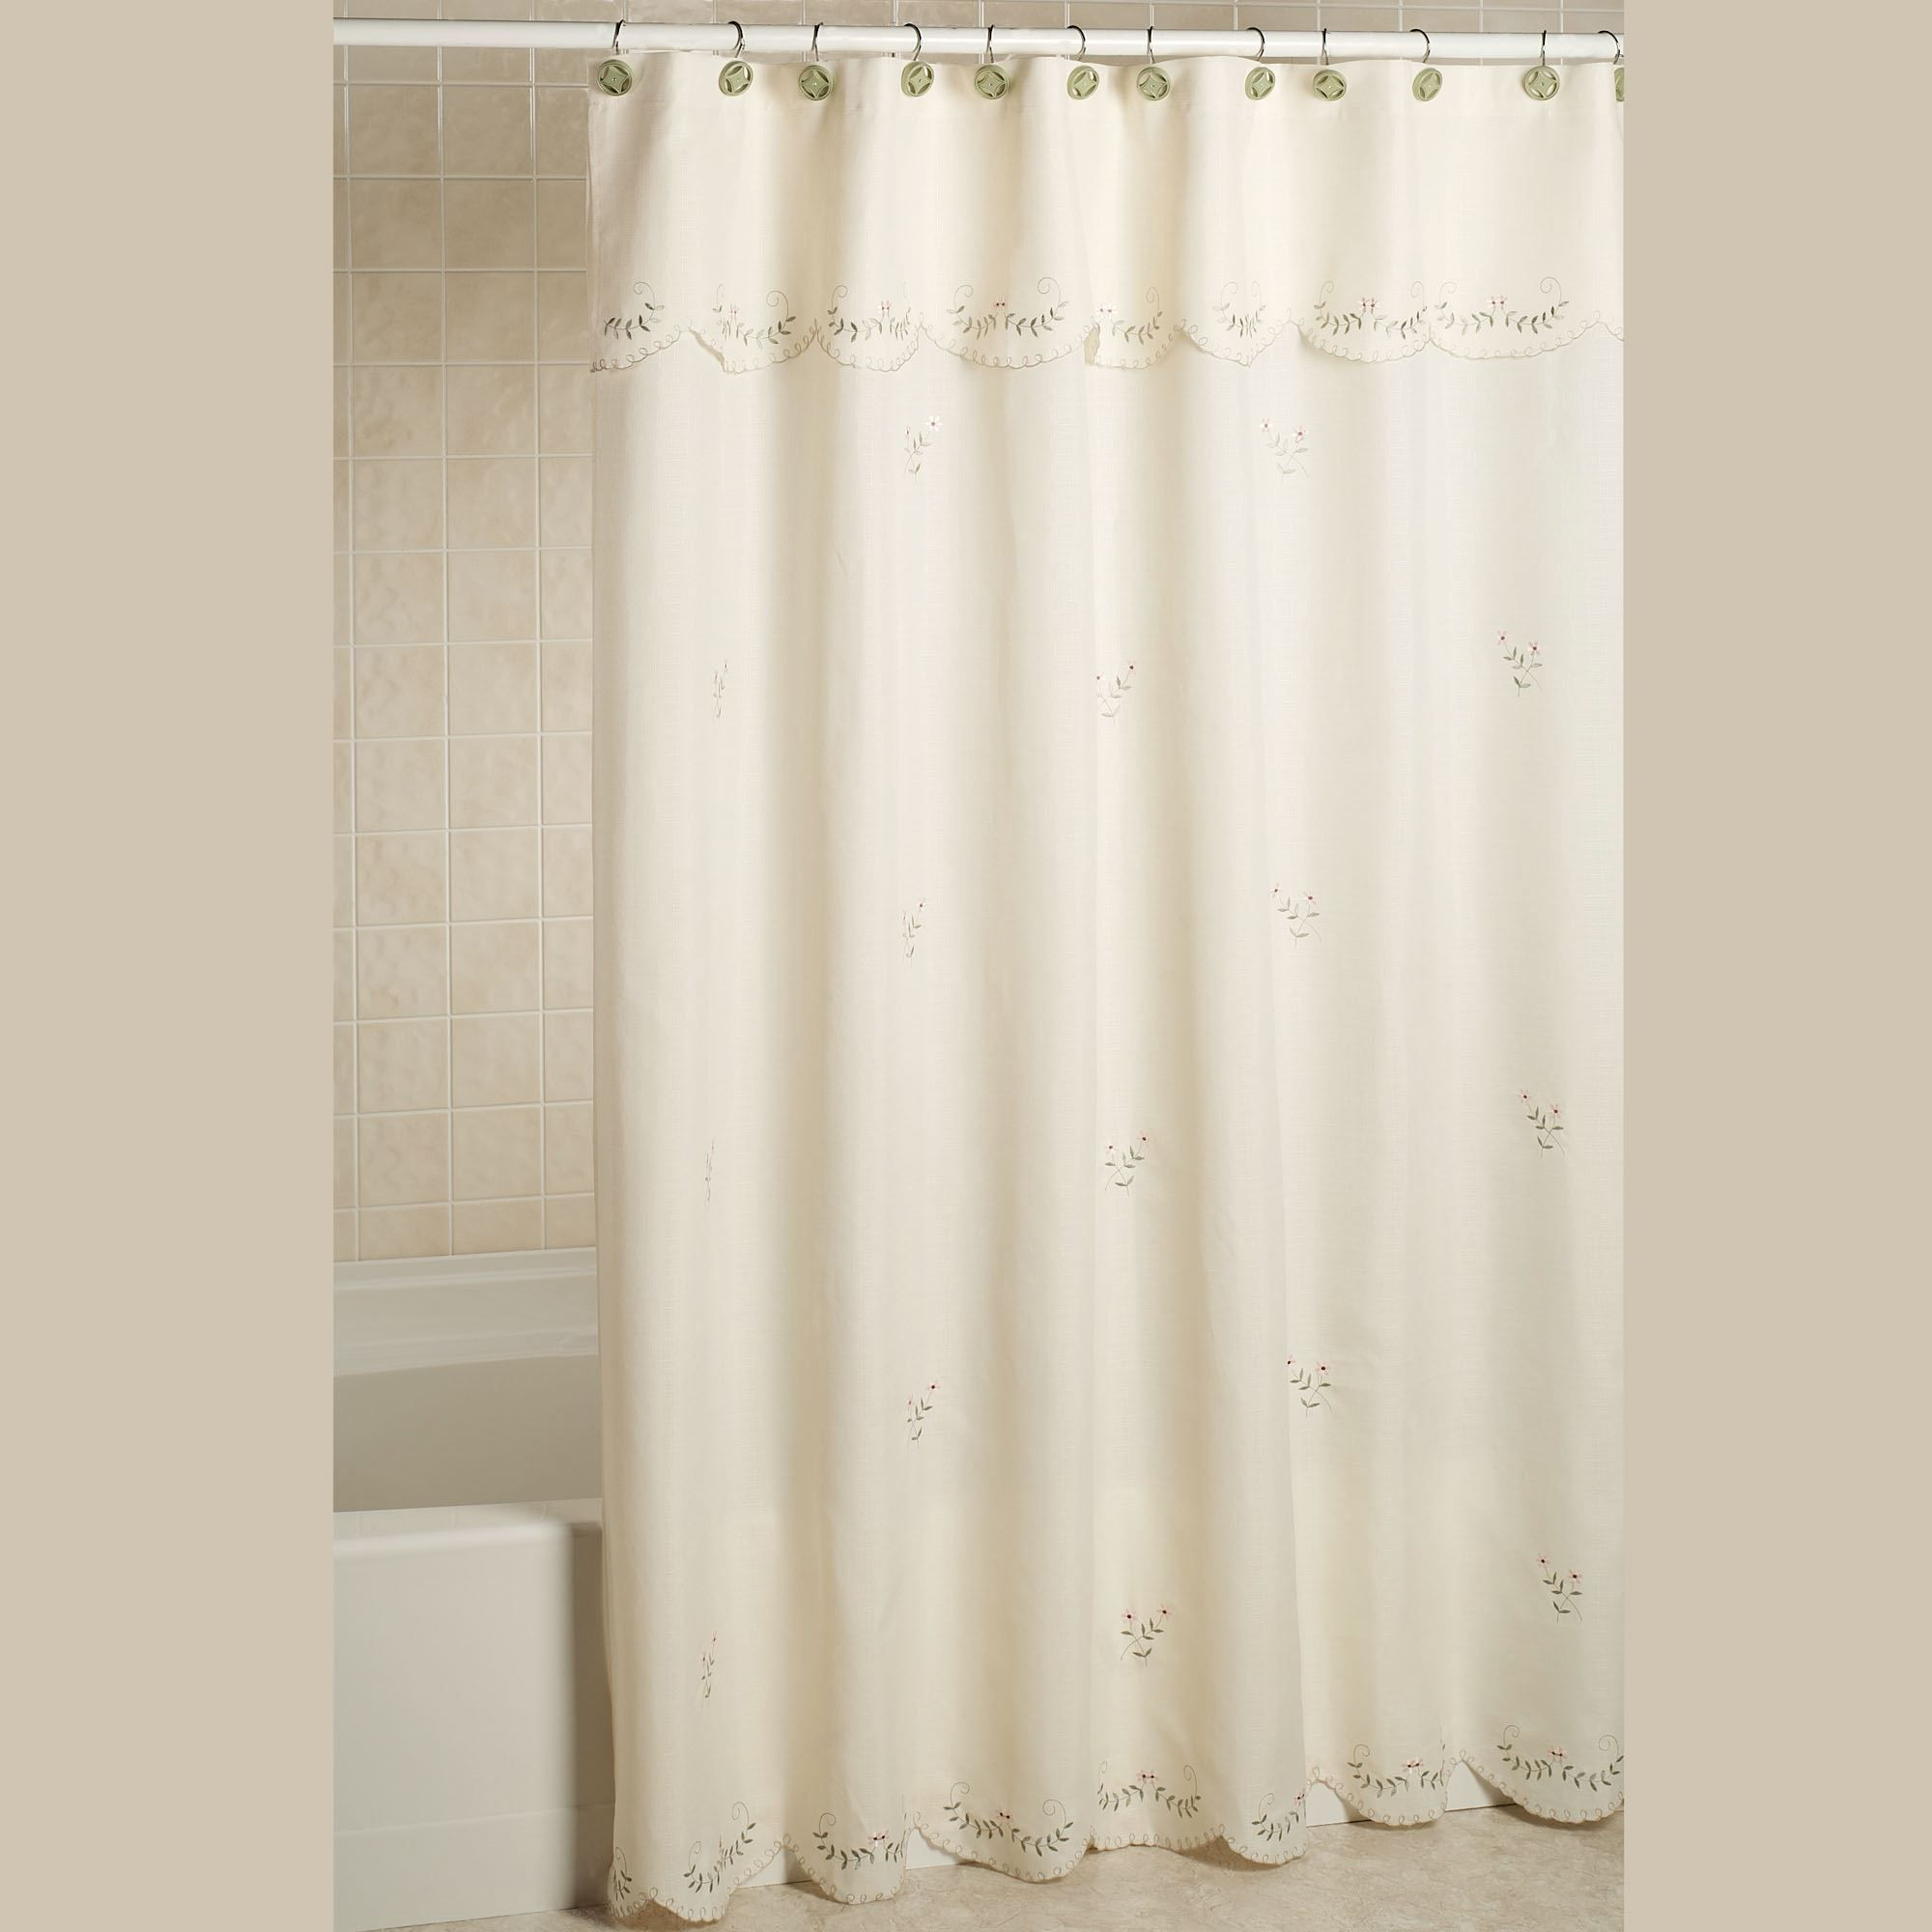 Choosing The Best Shower Curtain, Check It Out! | Curtain ideas ...